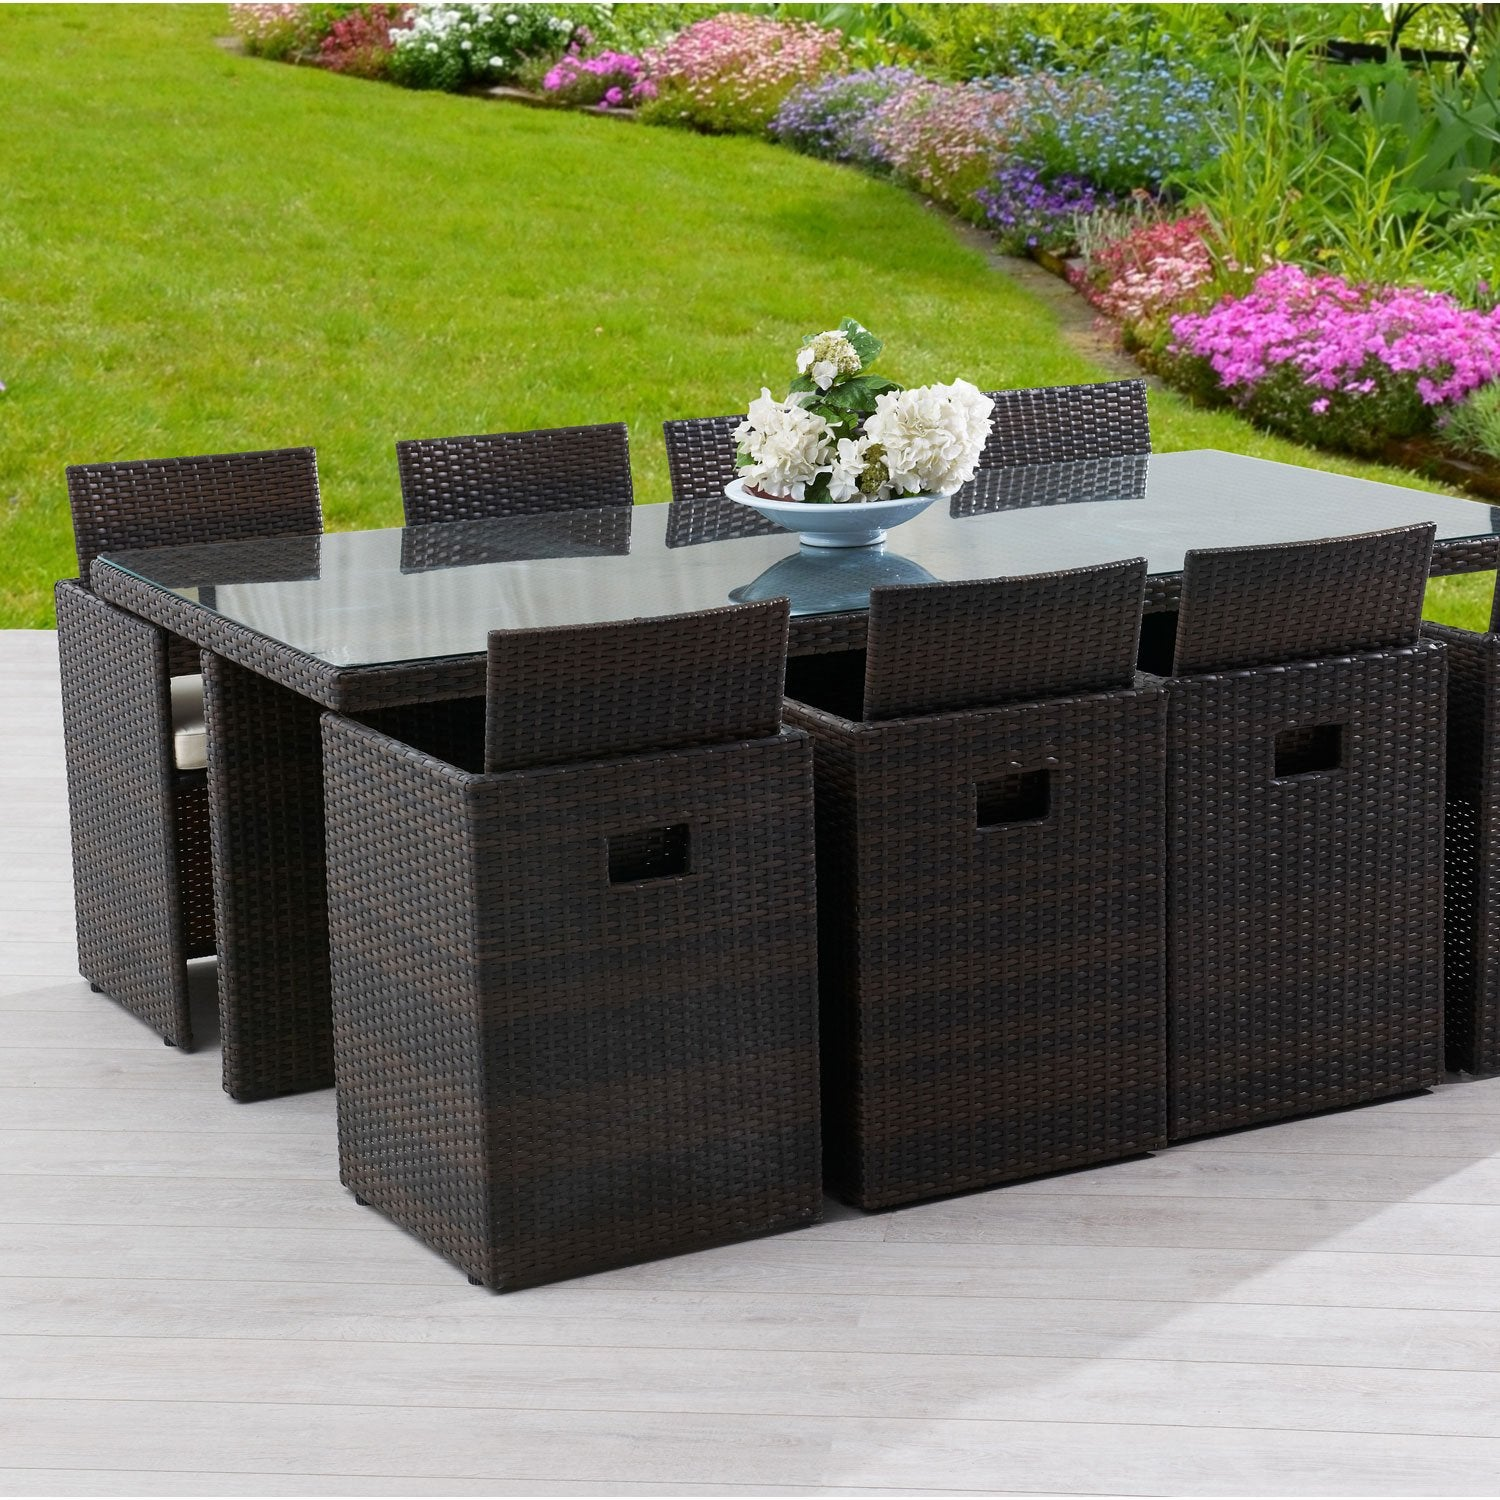 Salon de jardin encastrable r sine tress e marron 1 table - Table de jardin en osier ...